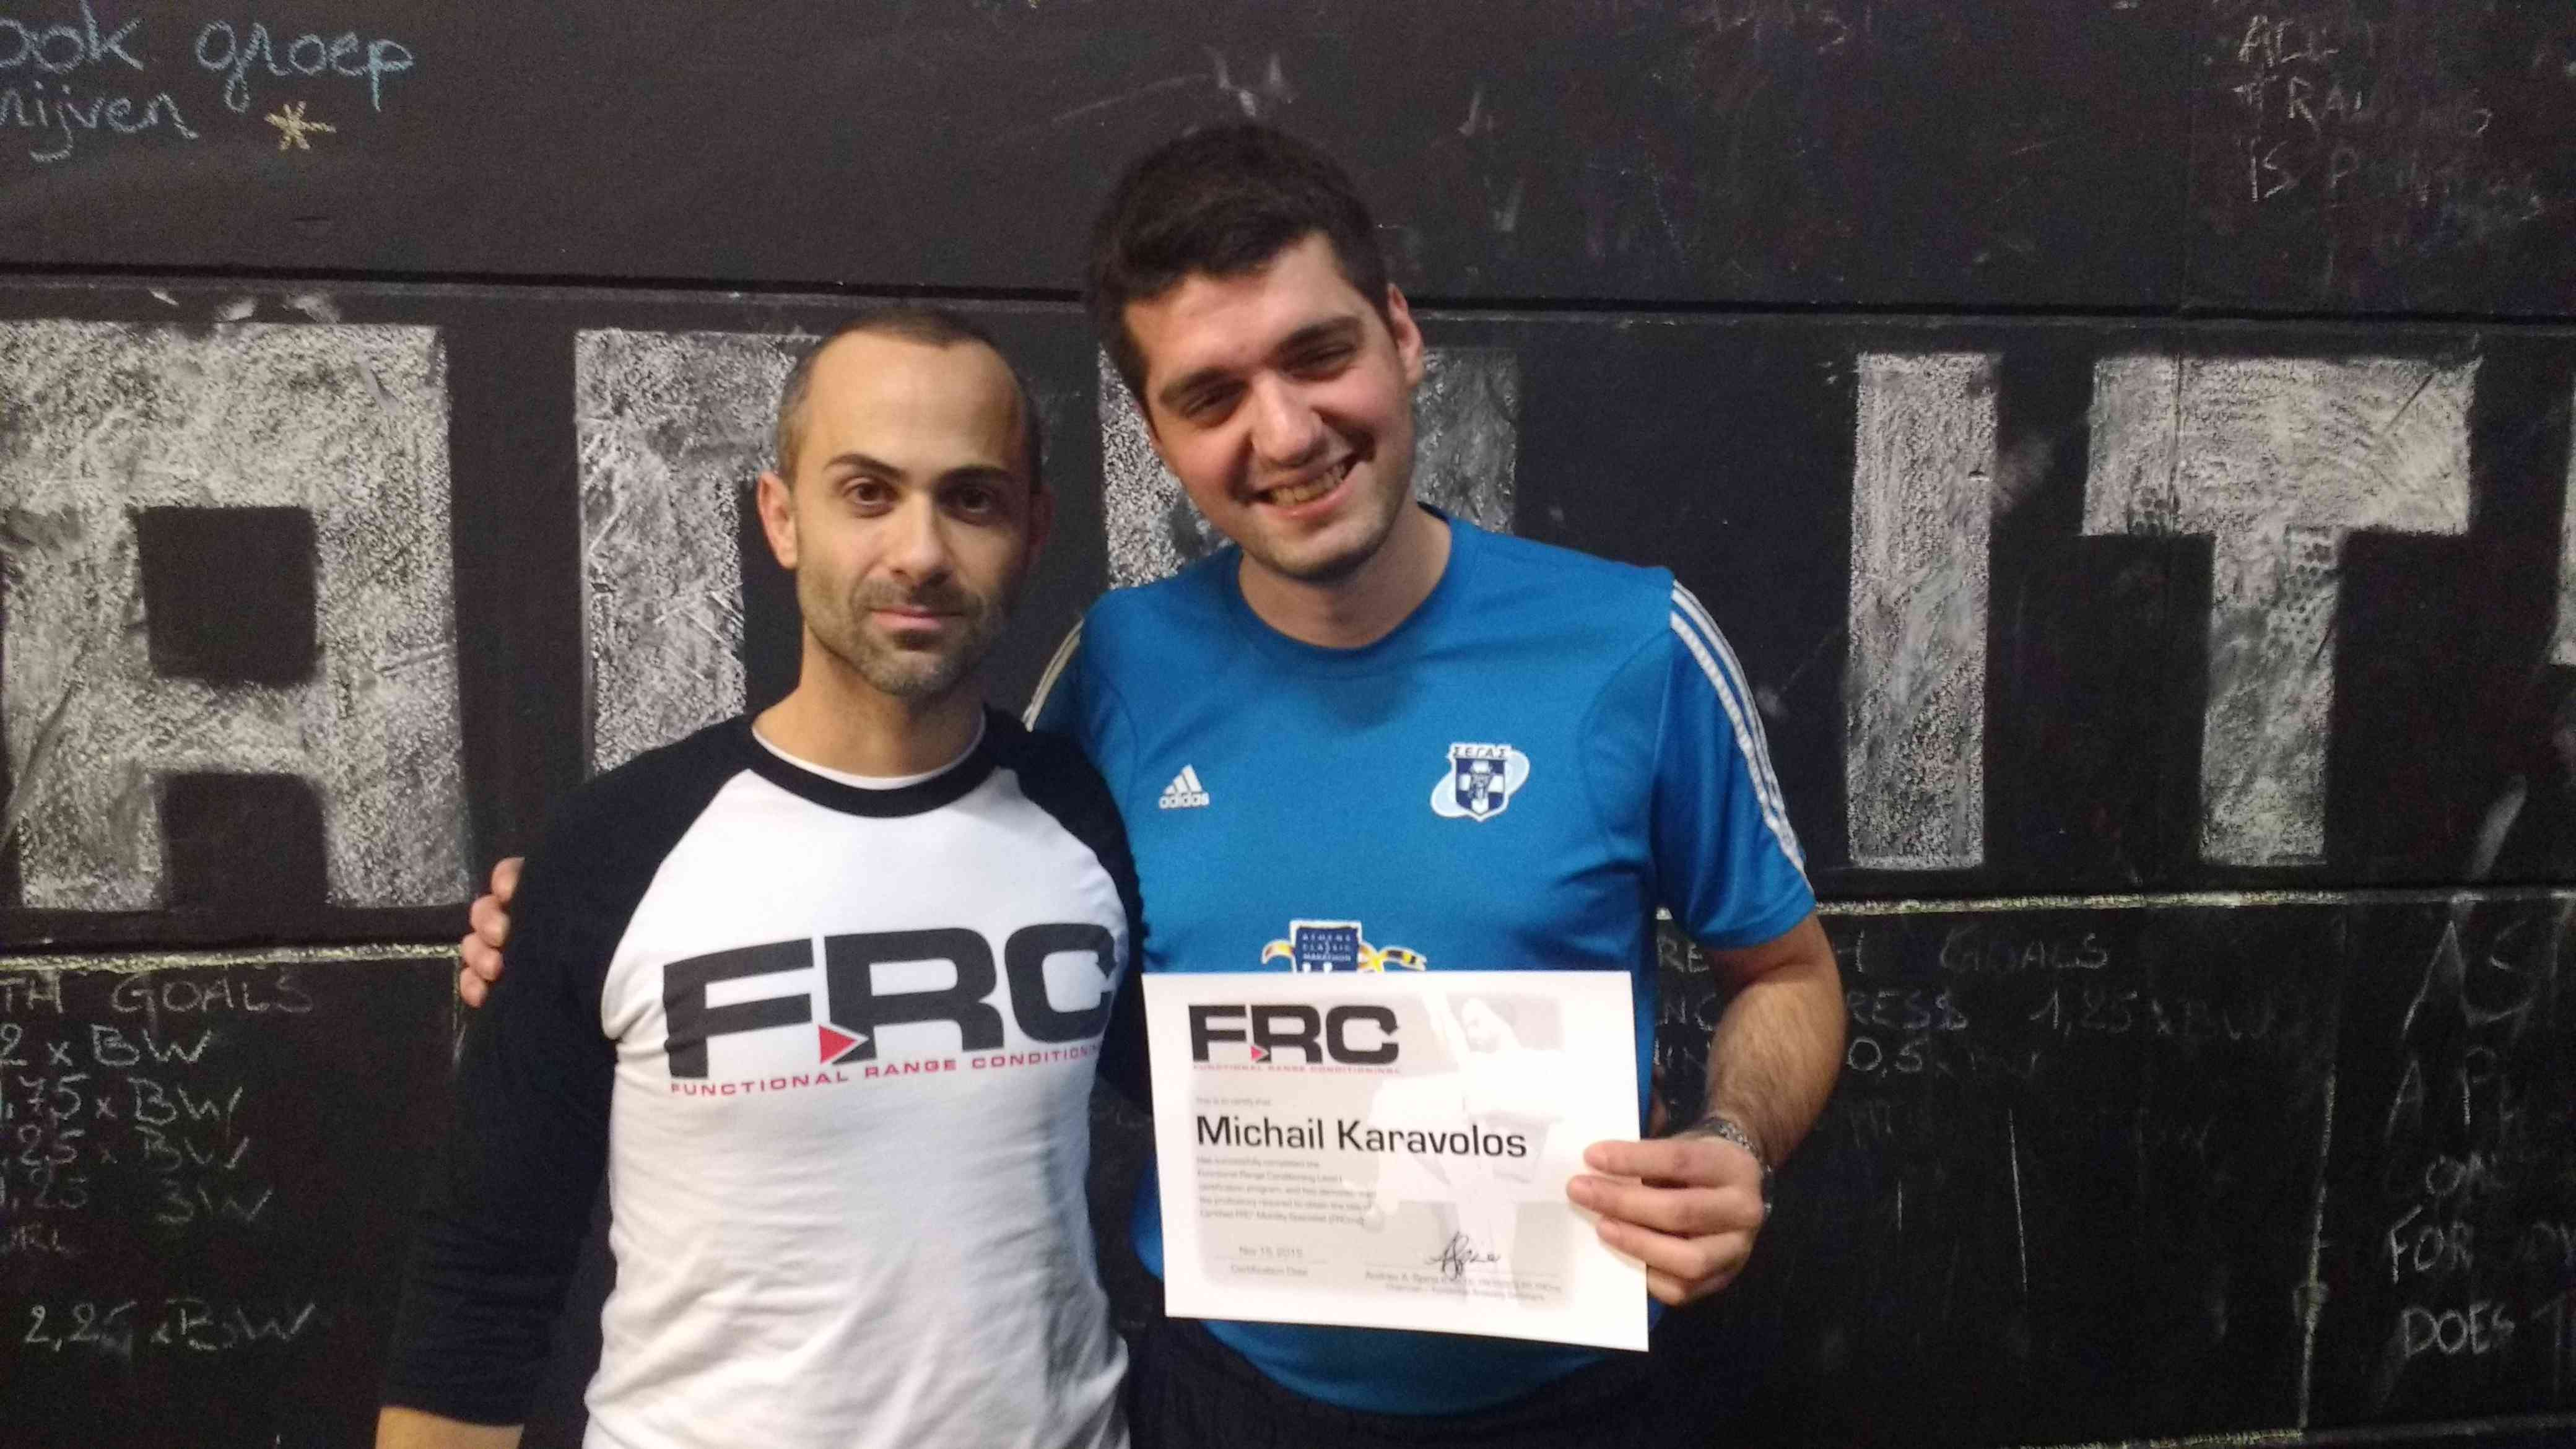 Dr. Andreo Spina at Functional Range Conditioning 2015 in Belgium